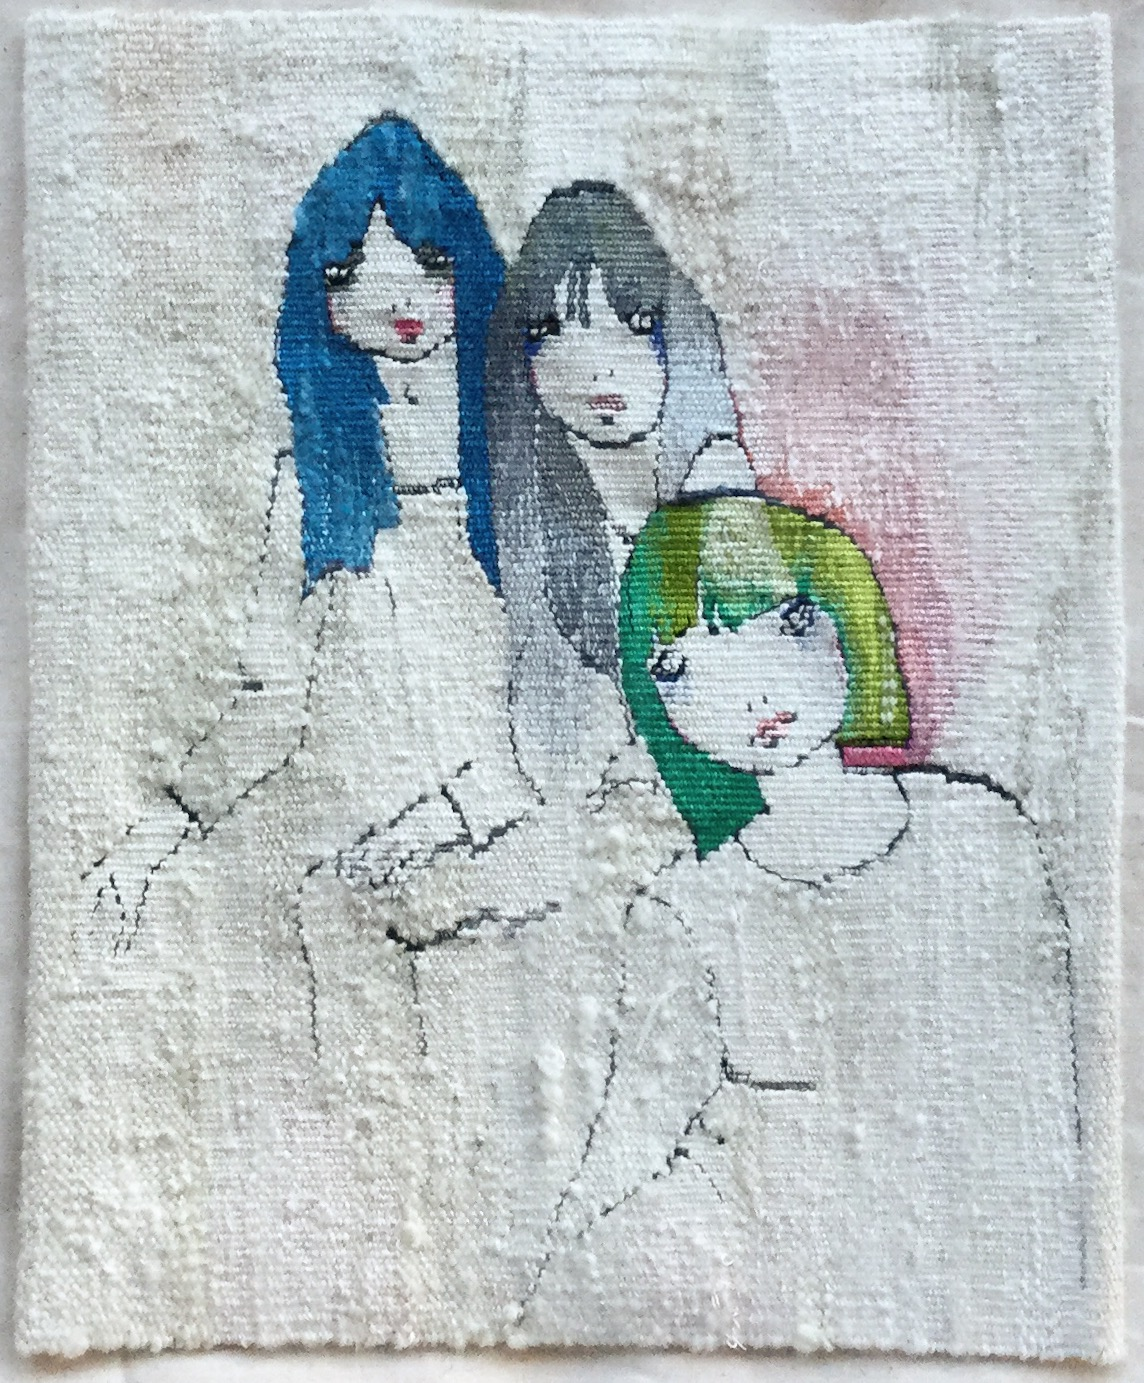 The Biba Girls  2017  30 x 24.5 cm  Also a finalist in the Kate Derum Award for Small Tapestries